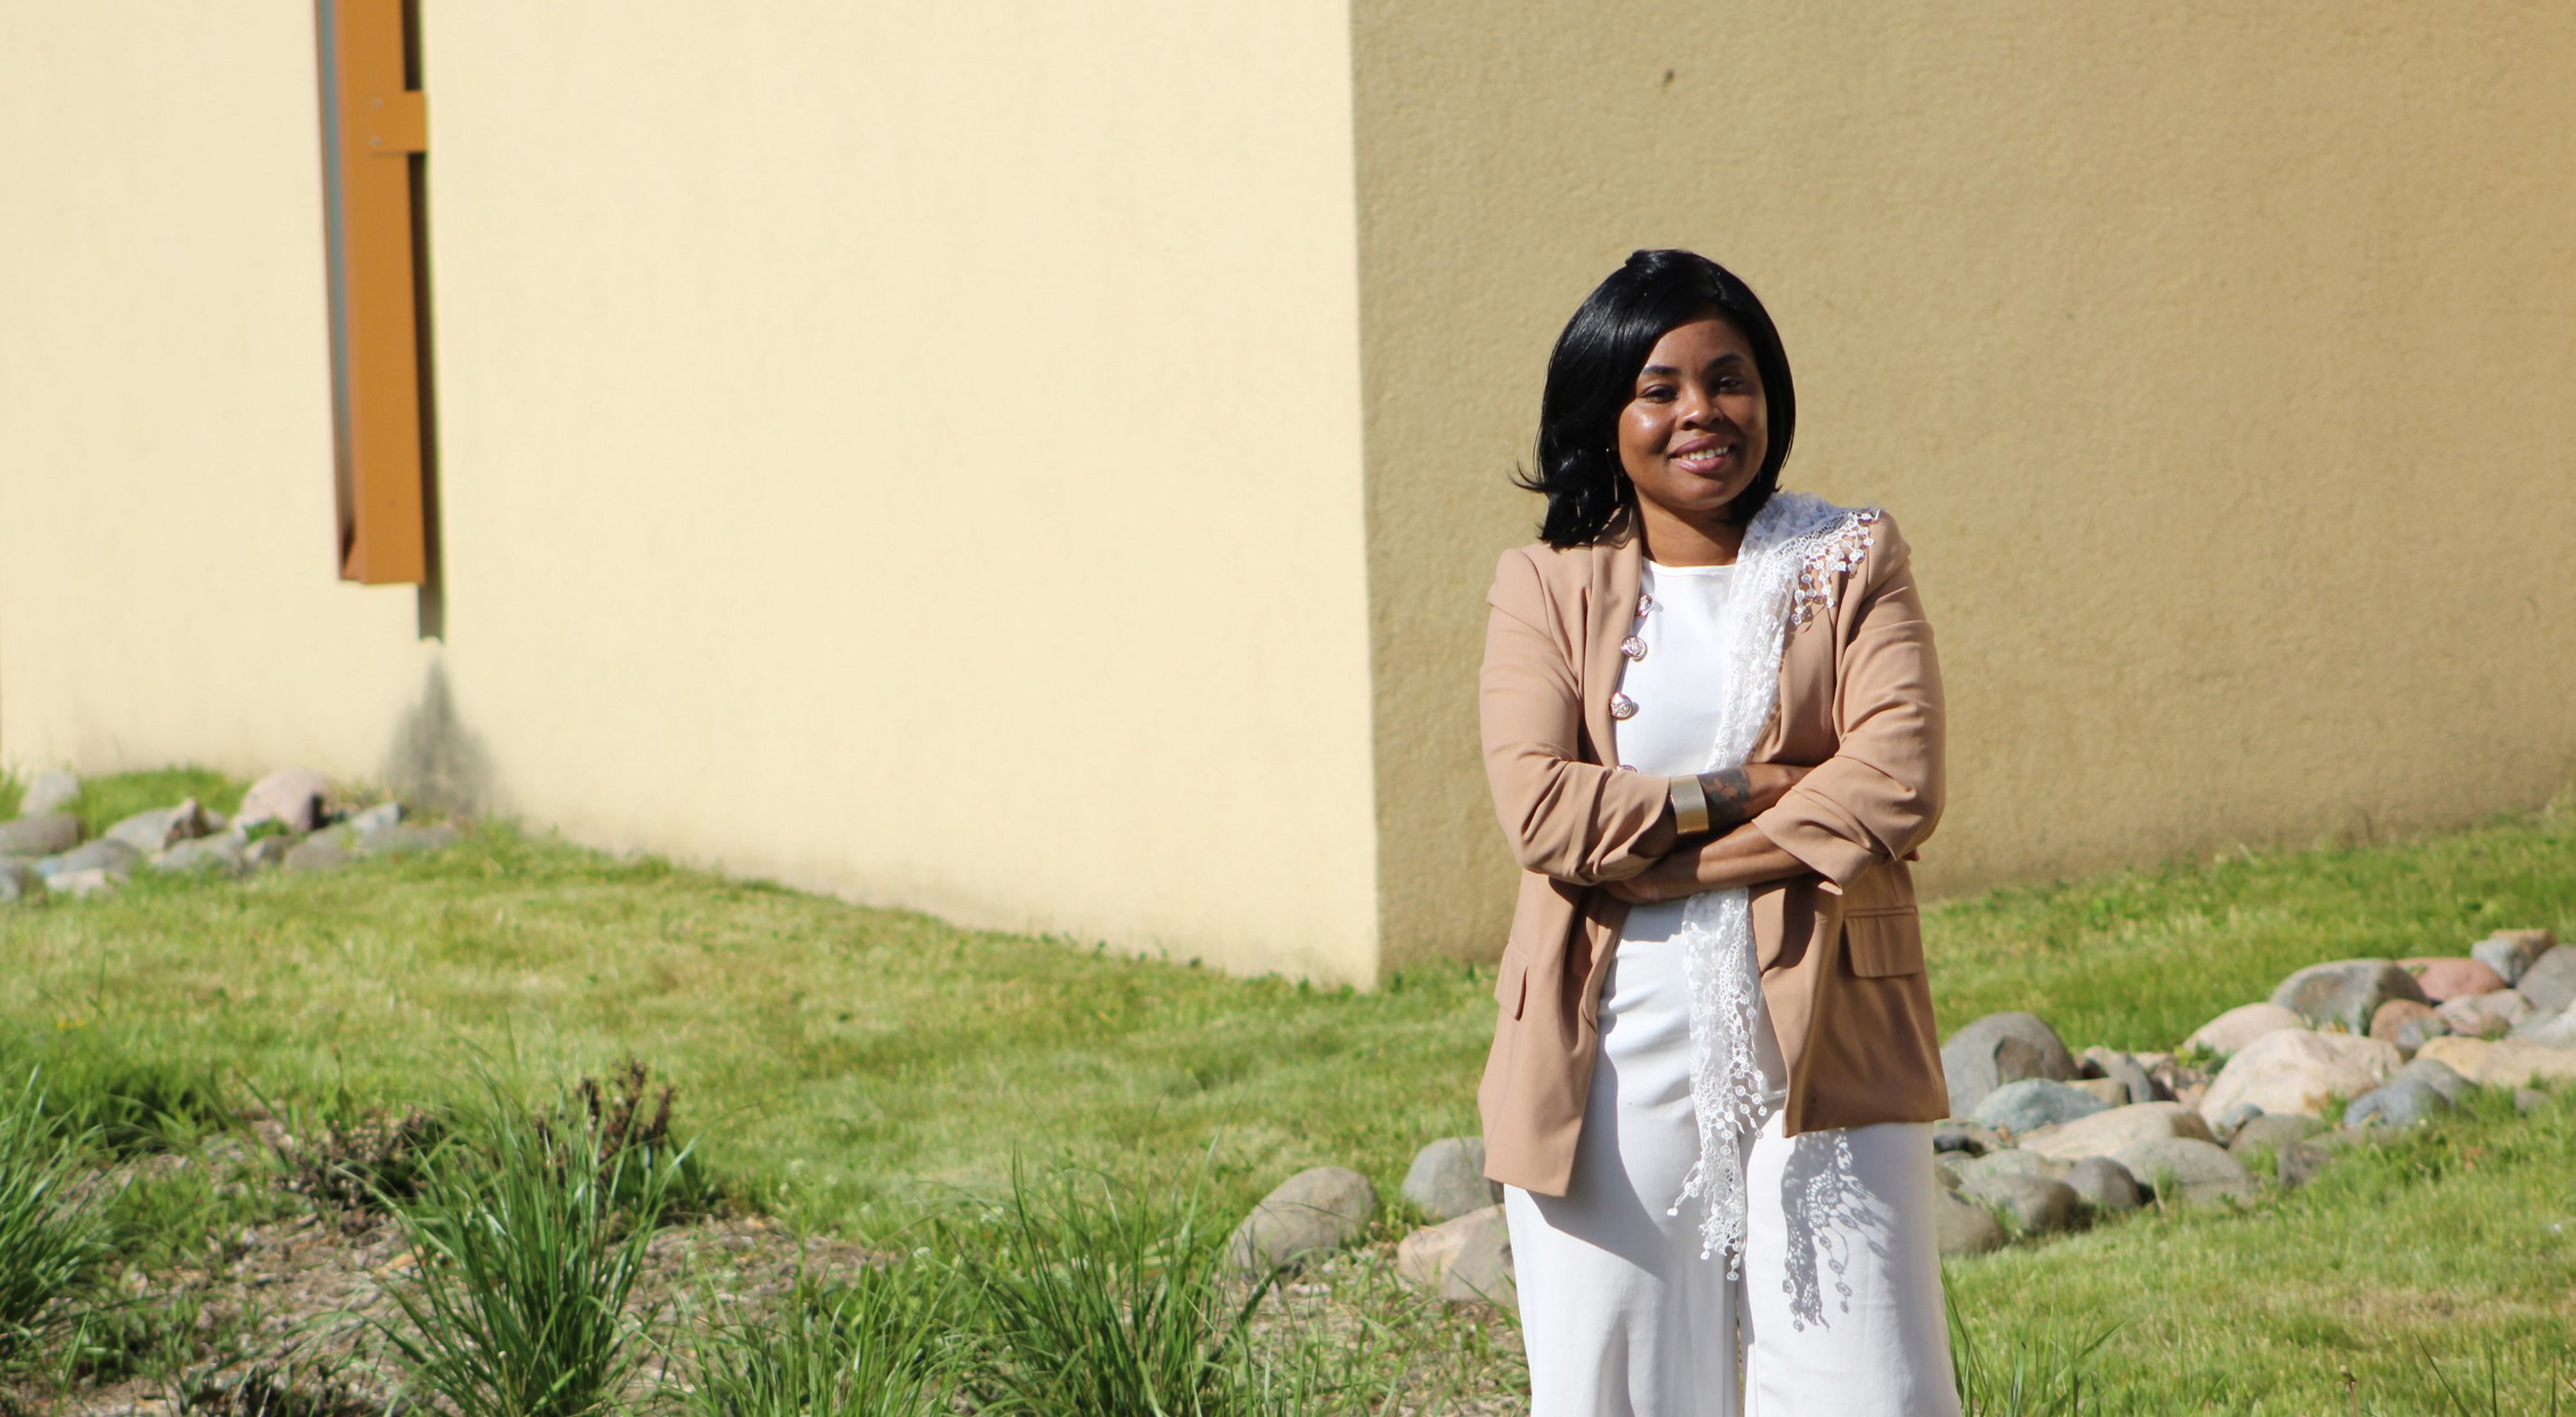 A smiling Kenya McKnight Ahad stands in front of a tan building with grass and rocks forming a bioswale.